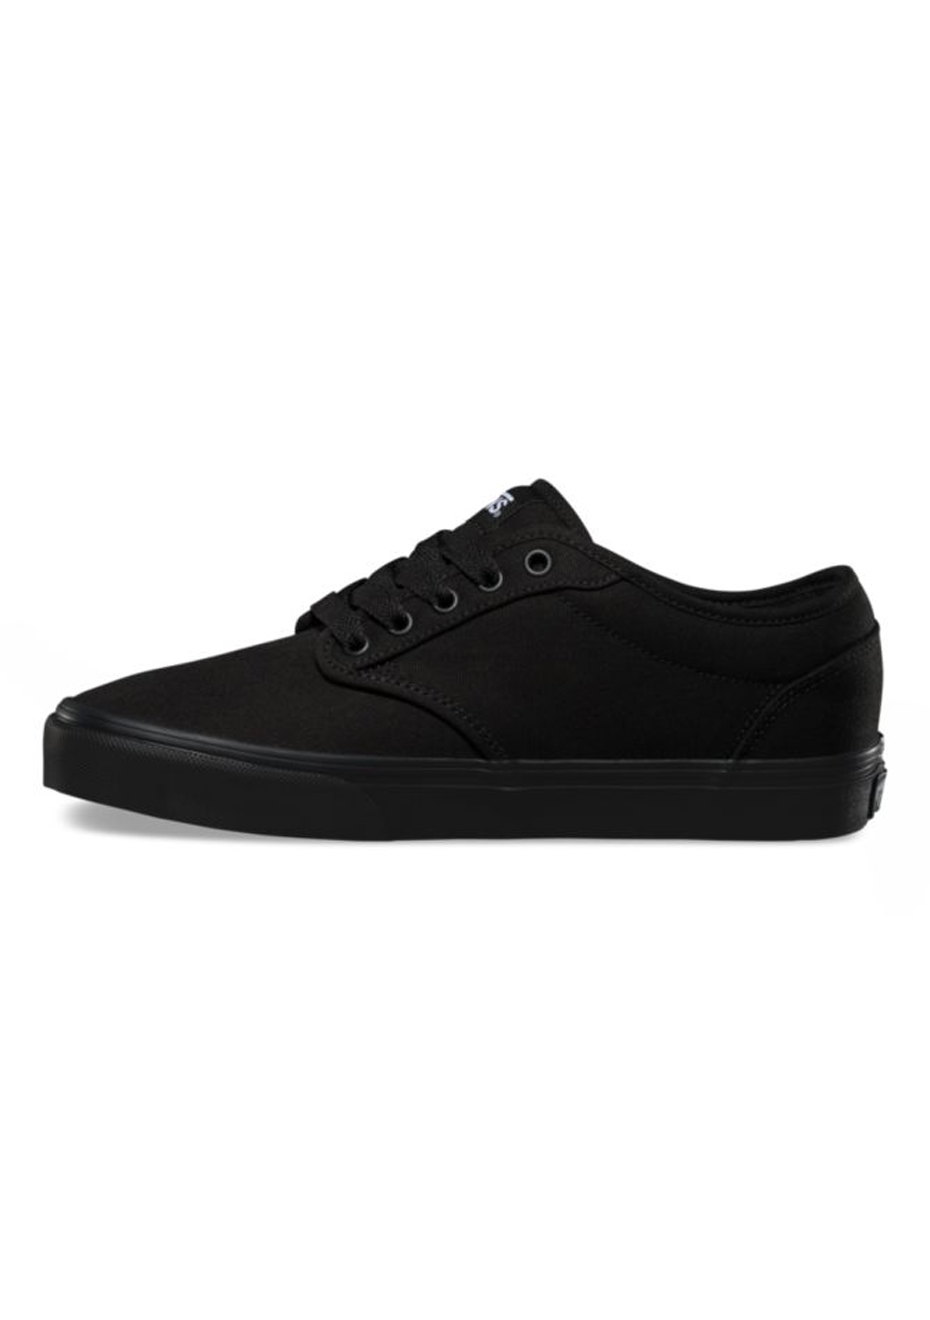 Vans - Womens Atwood Low - Canvas - Black/Black